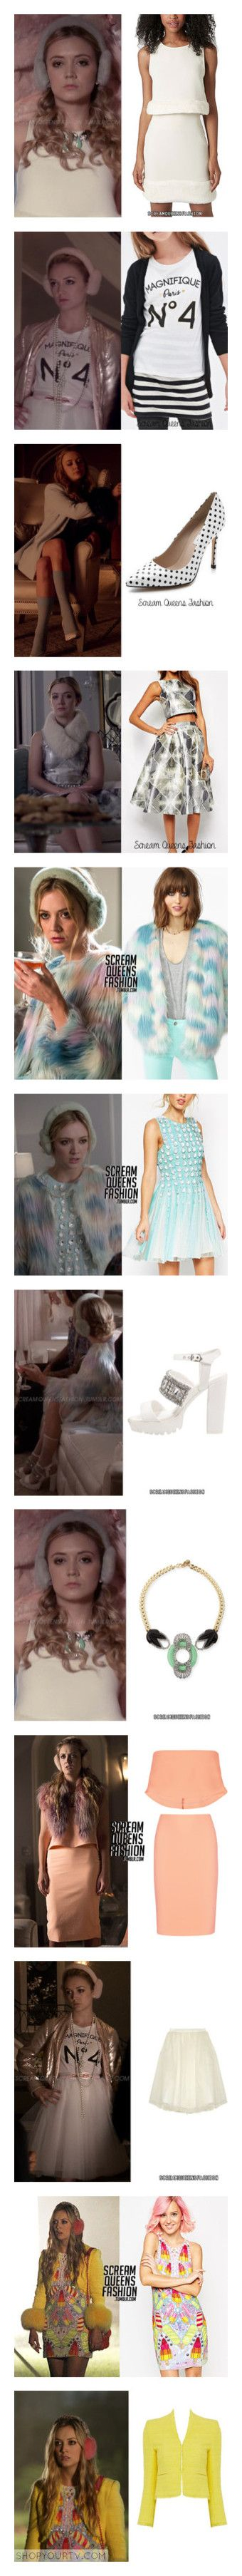 """""""Chanel #3 (Sadie Swenson)"""" by chaneloberlin123456789 on Polyvore"""